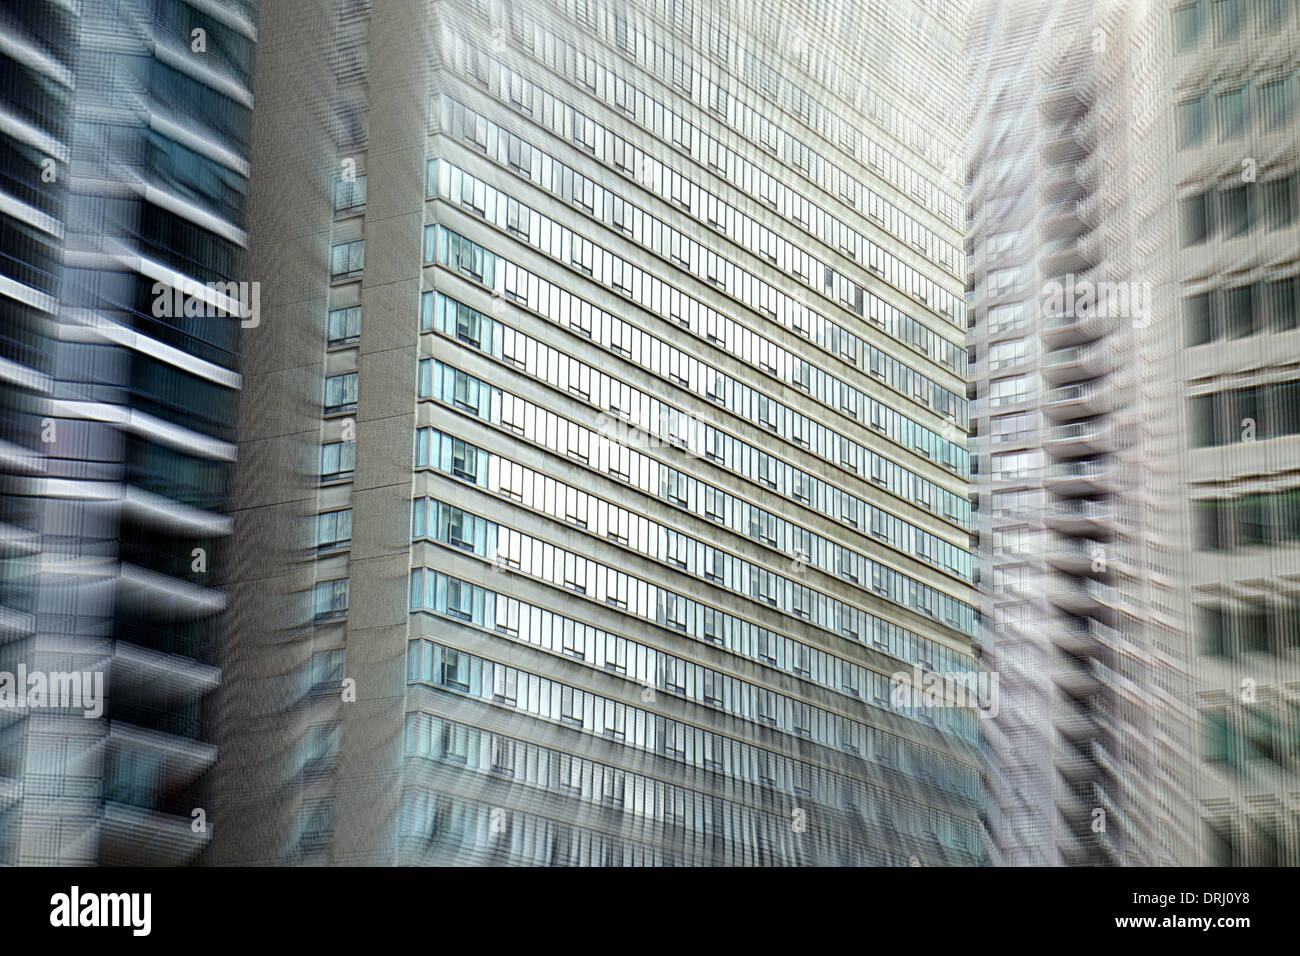 Office buildings in Toronto, Canada - Stock Image